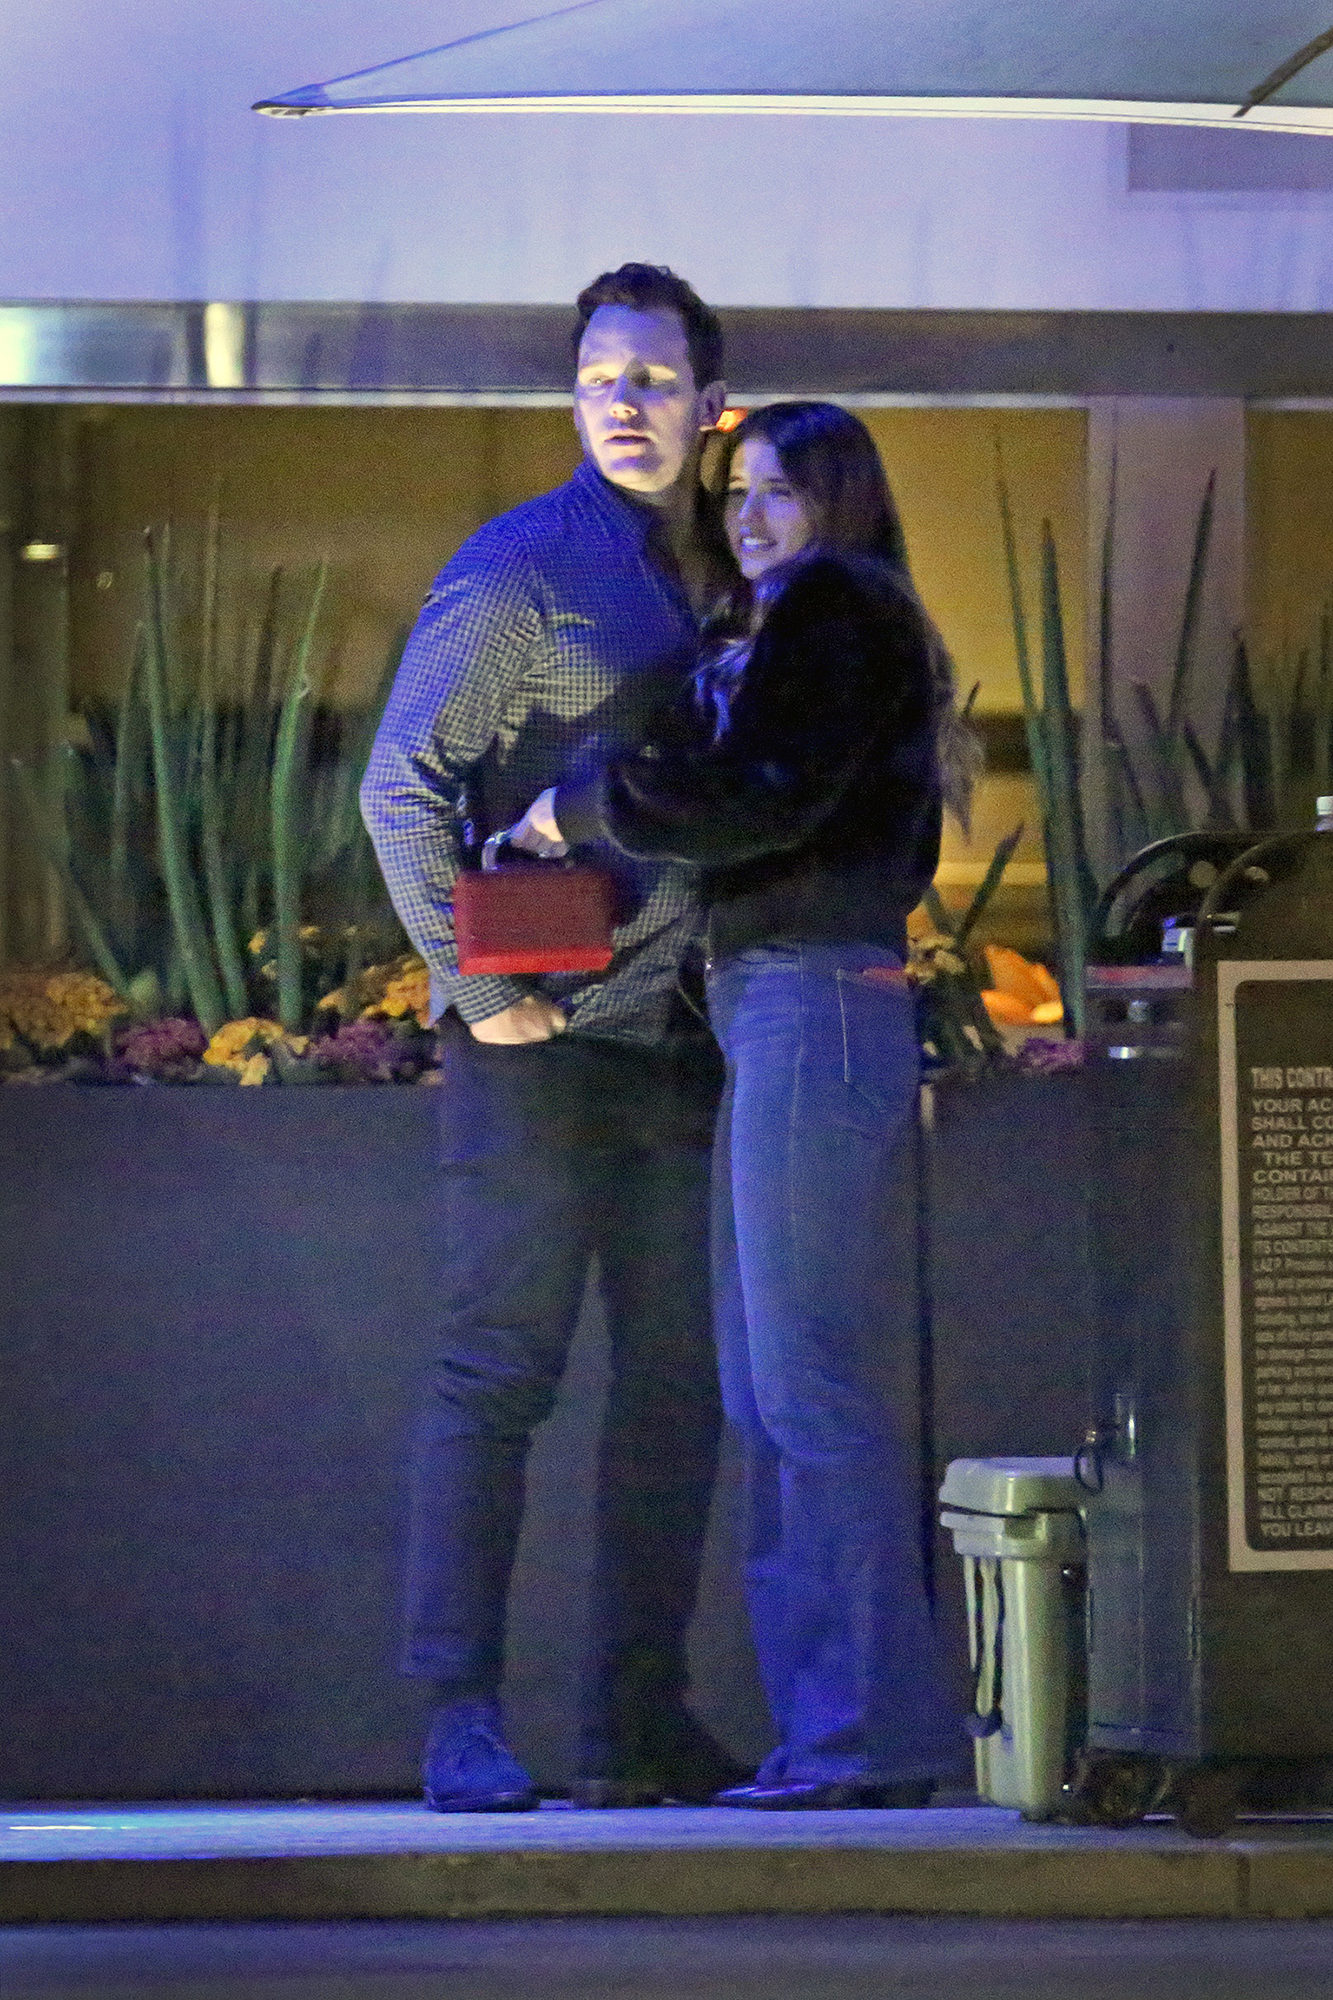 Chris Pratt and Katherine Schwarzenegger Love in Malibu - The engaged duo couldn't keep their hands off of each other as they waited for the car valet.